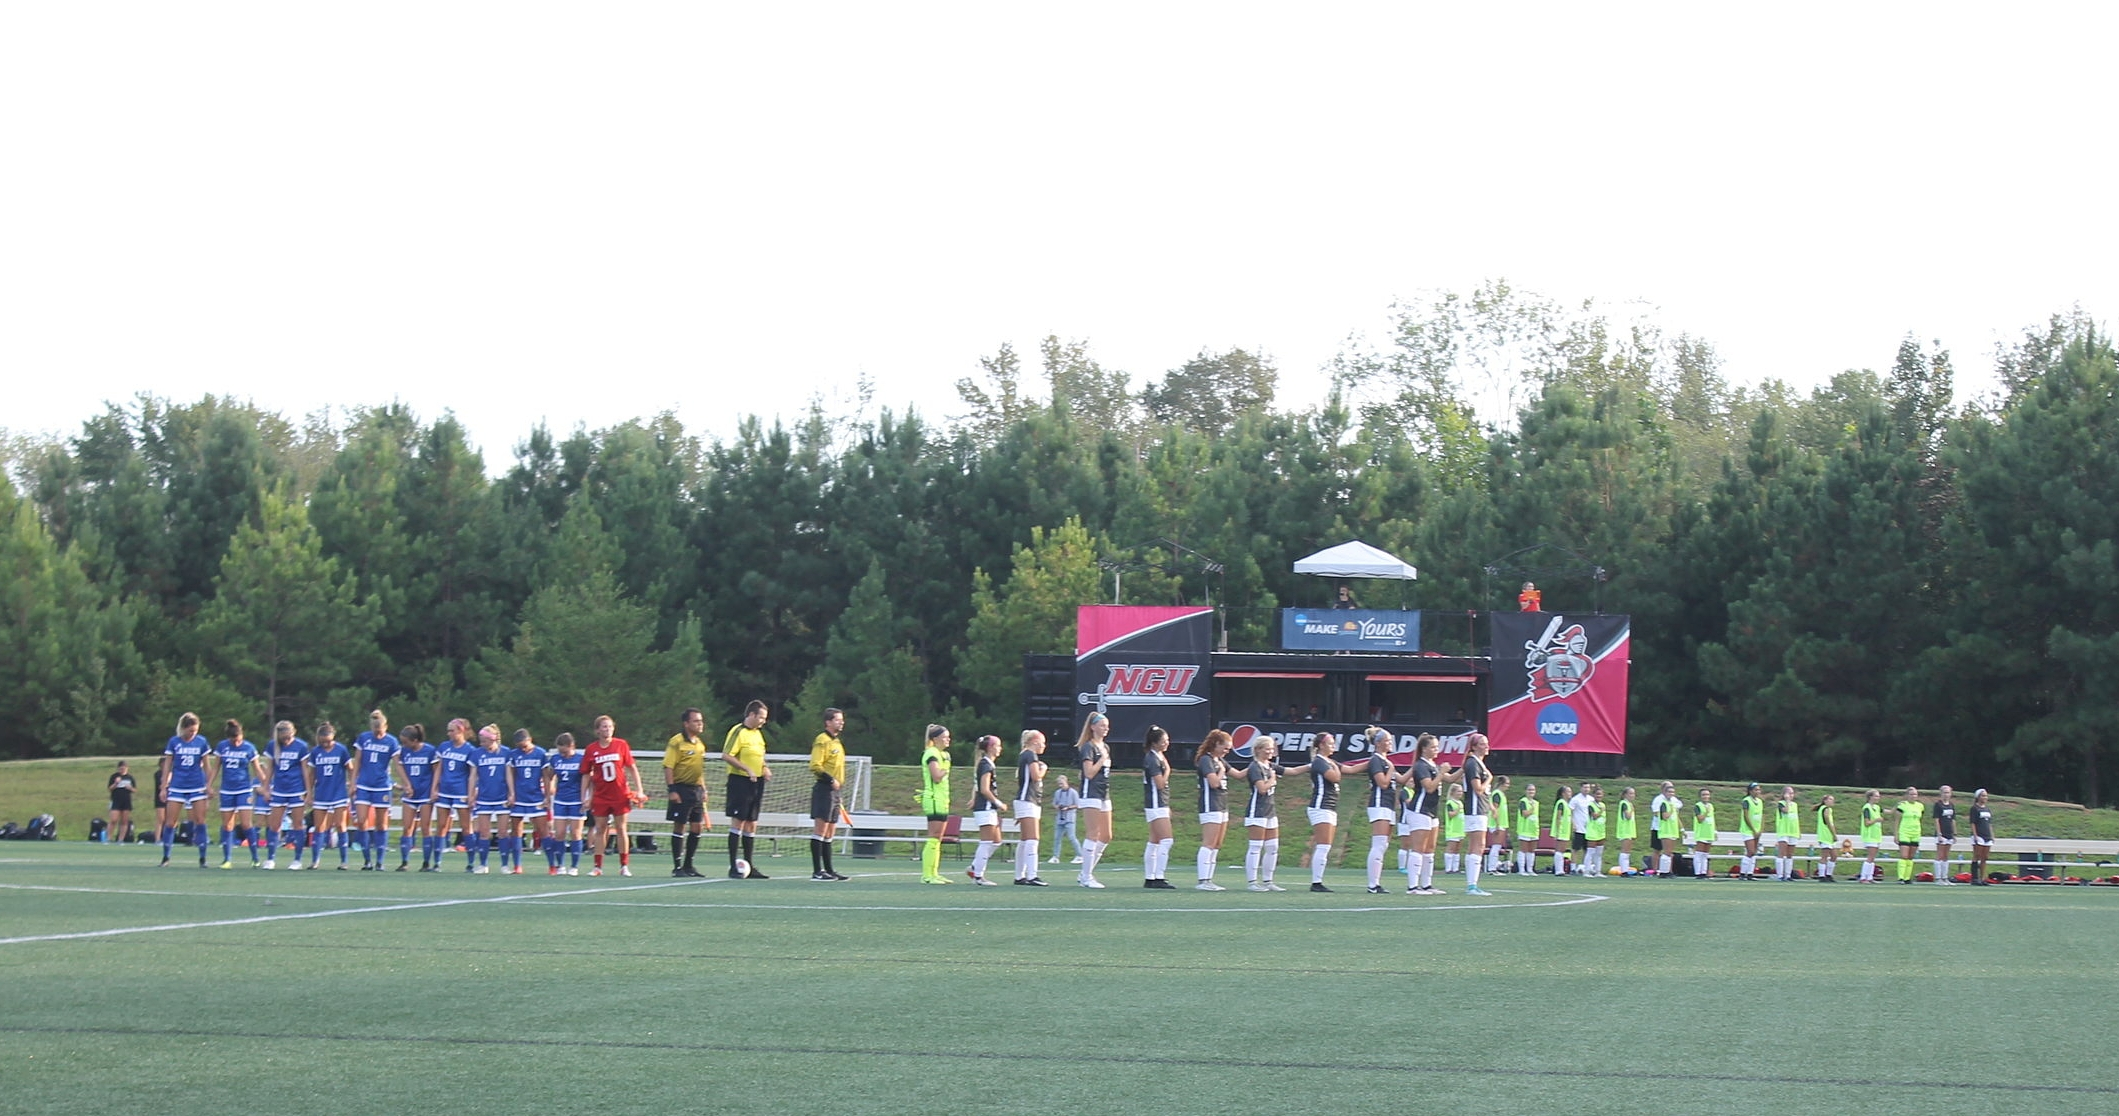 Both teams standing together for the pledge of allegiance.